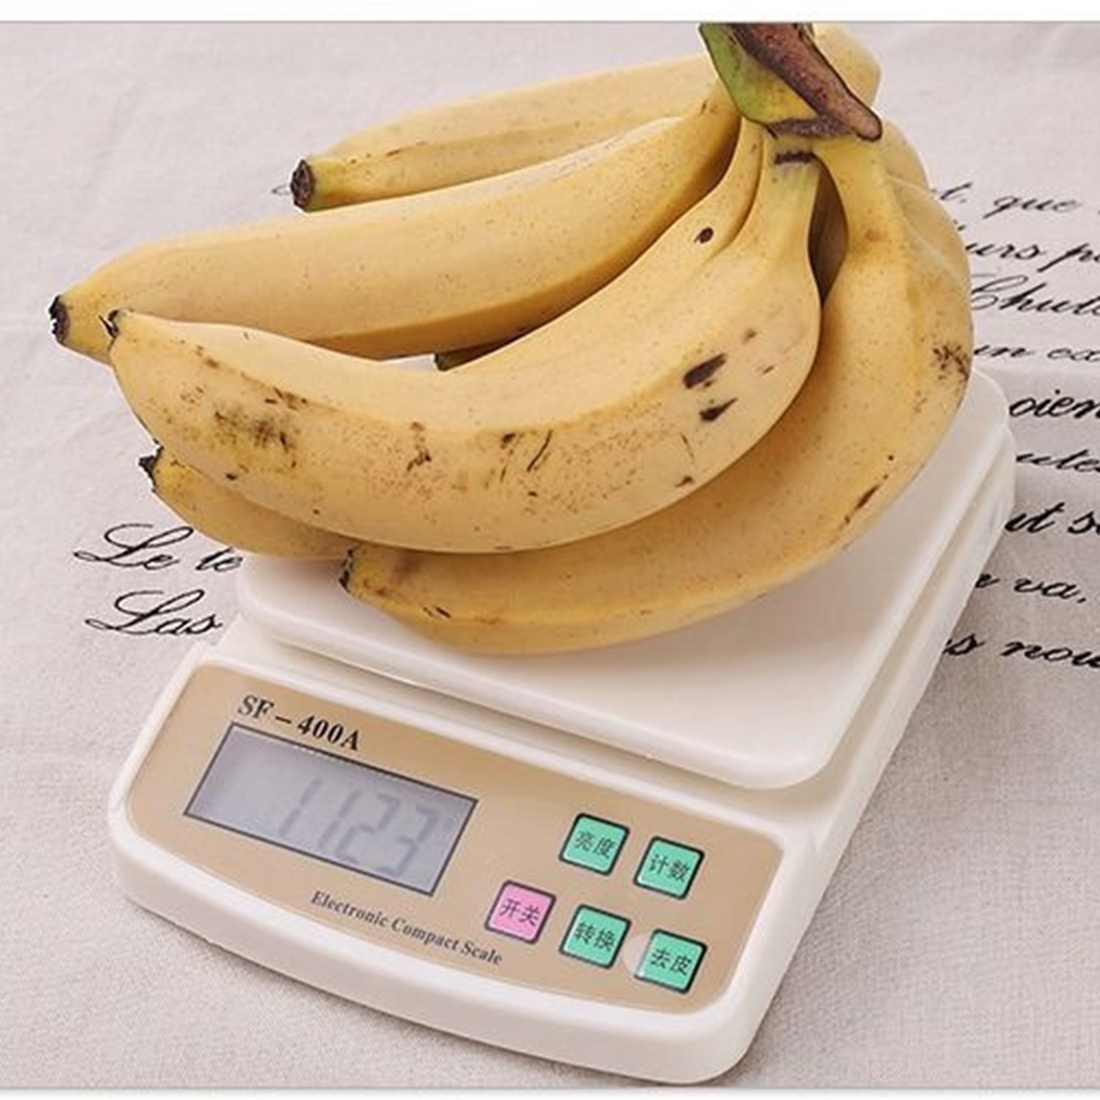 Mini Digital Electronic scales Pocket 10Kg/1g Kitchen Weighing Scale LCD Display Backlight Scales kitchen foods cale